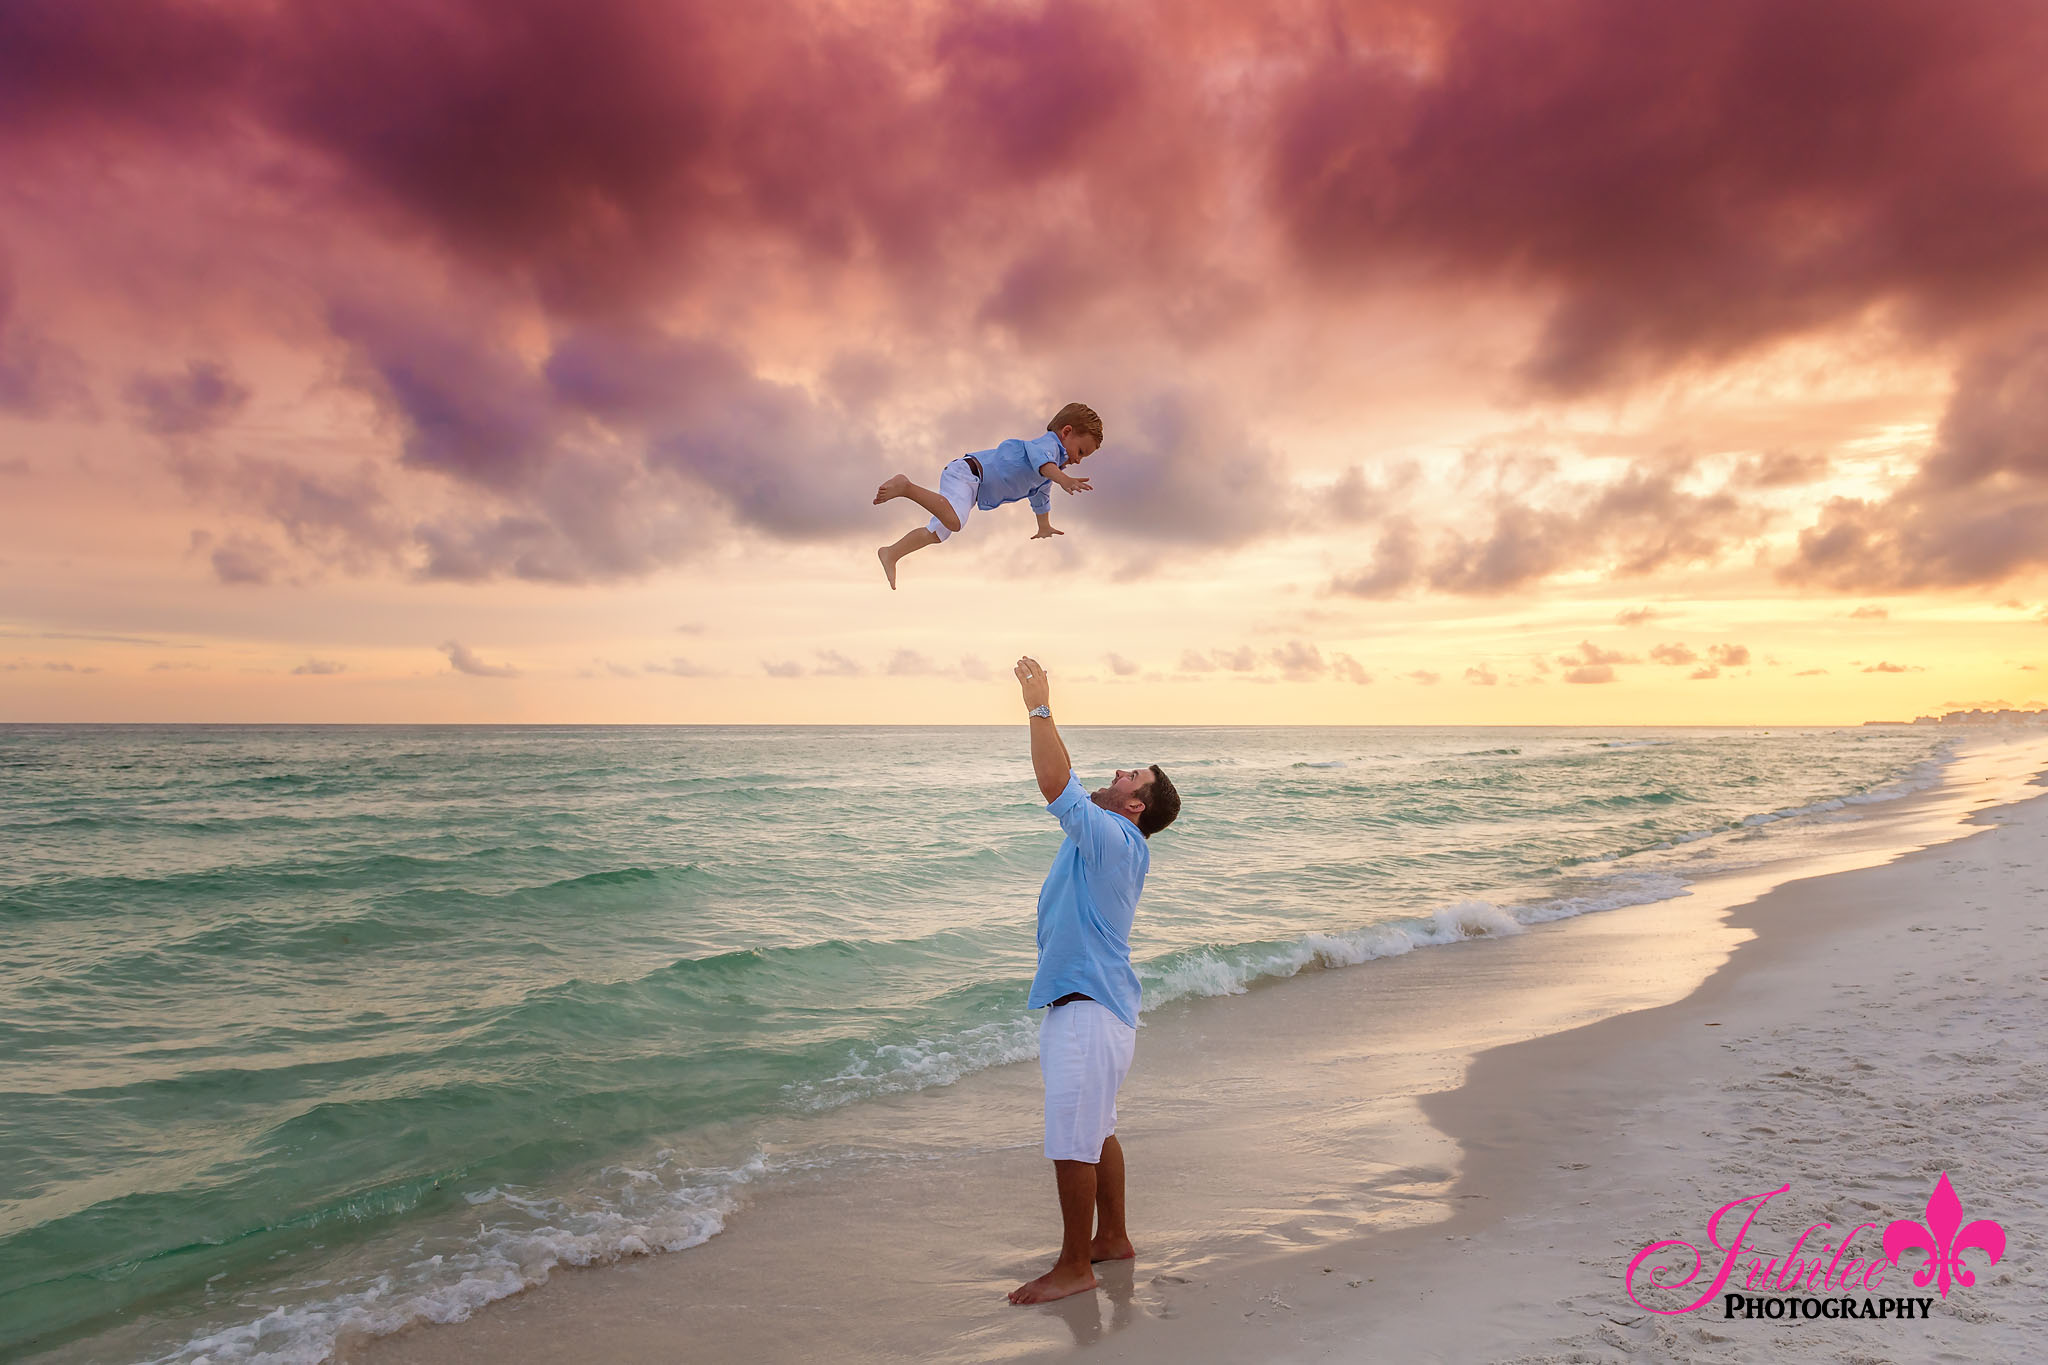 destin_photographer_6035